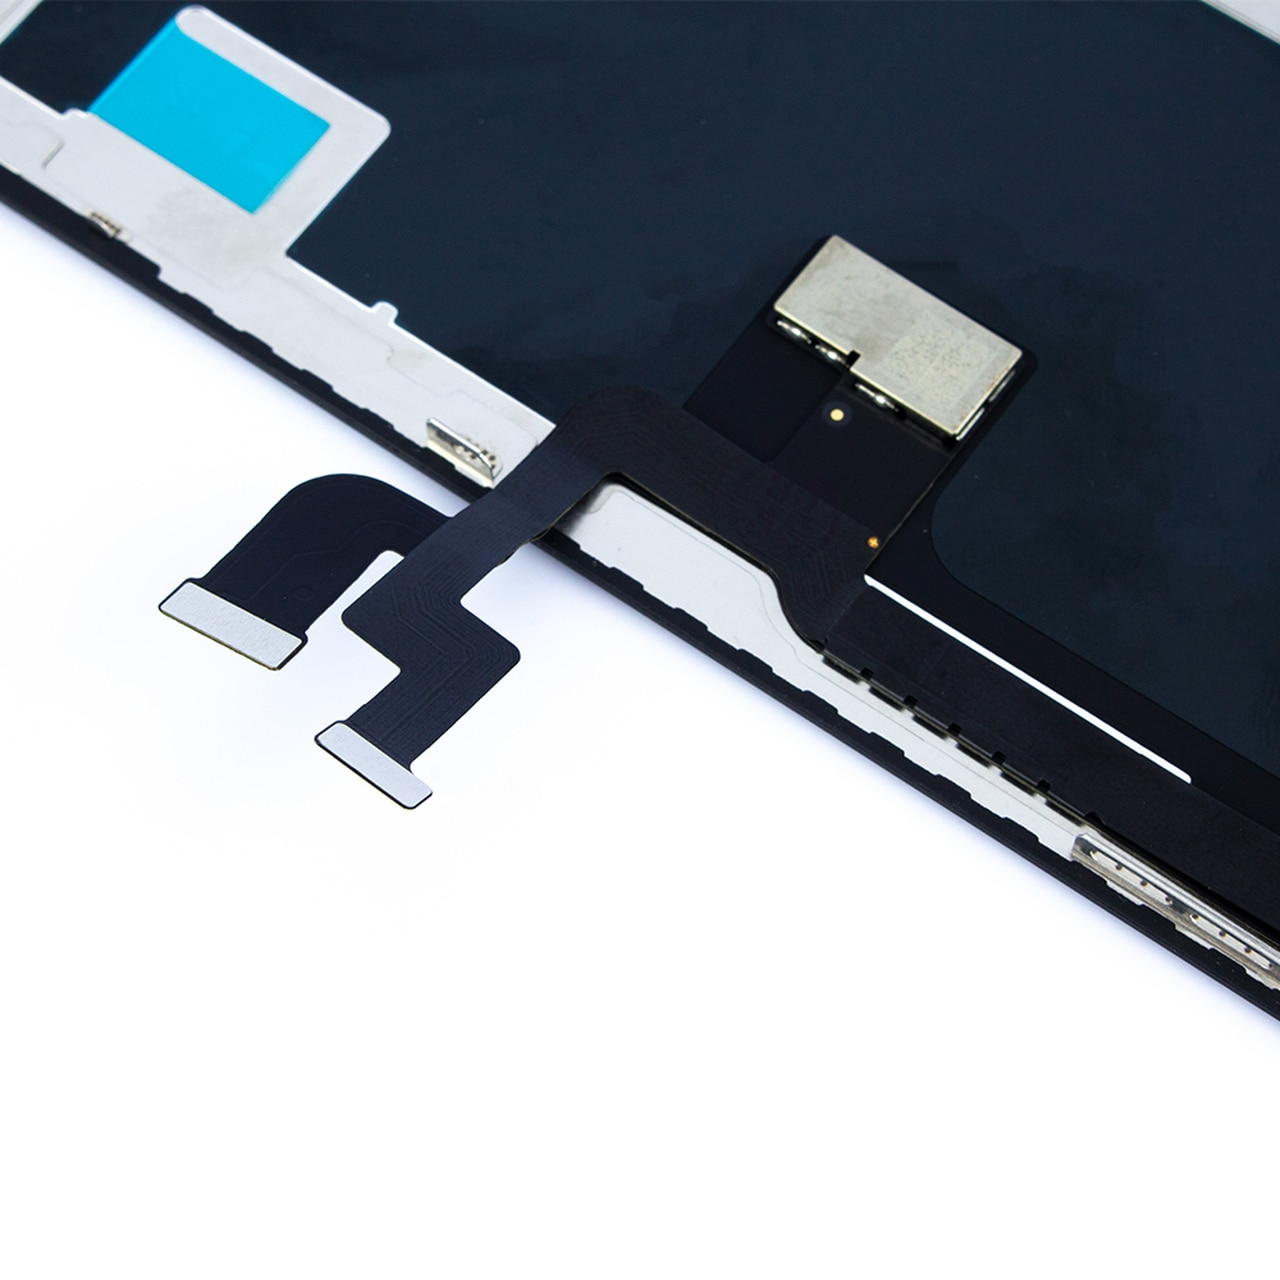 5Pcs 3D LCD Touch Screen For iPhone X TFT Display Assembly No Dead Pixel Pantalla Replacement For iPhone 6S True Tone Free Gift enlarge